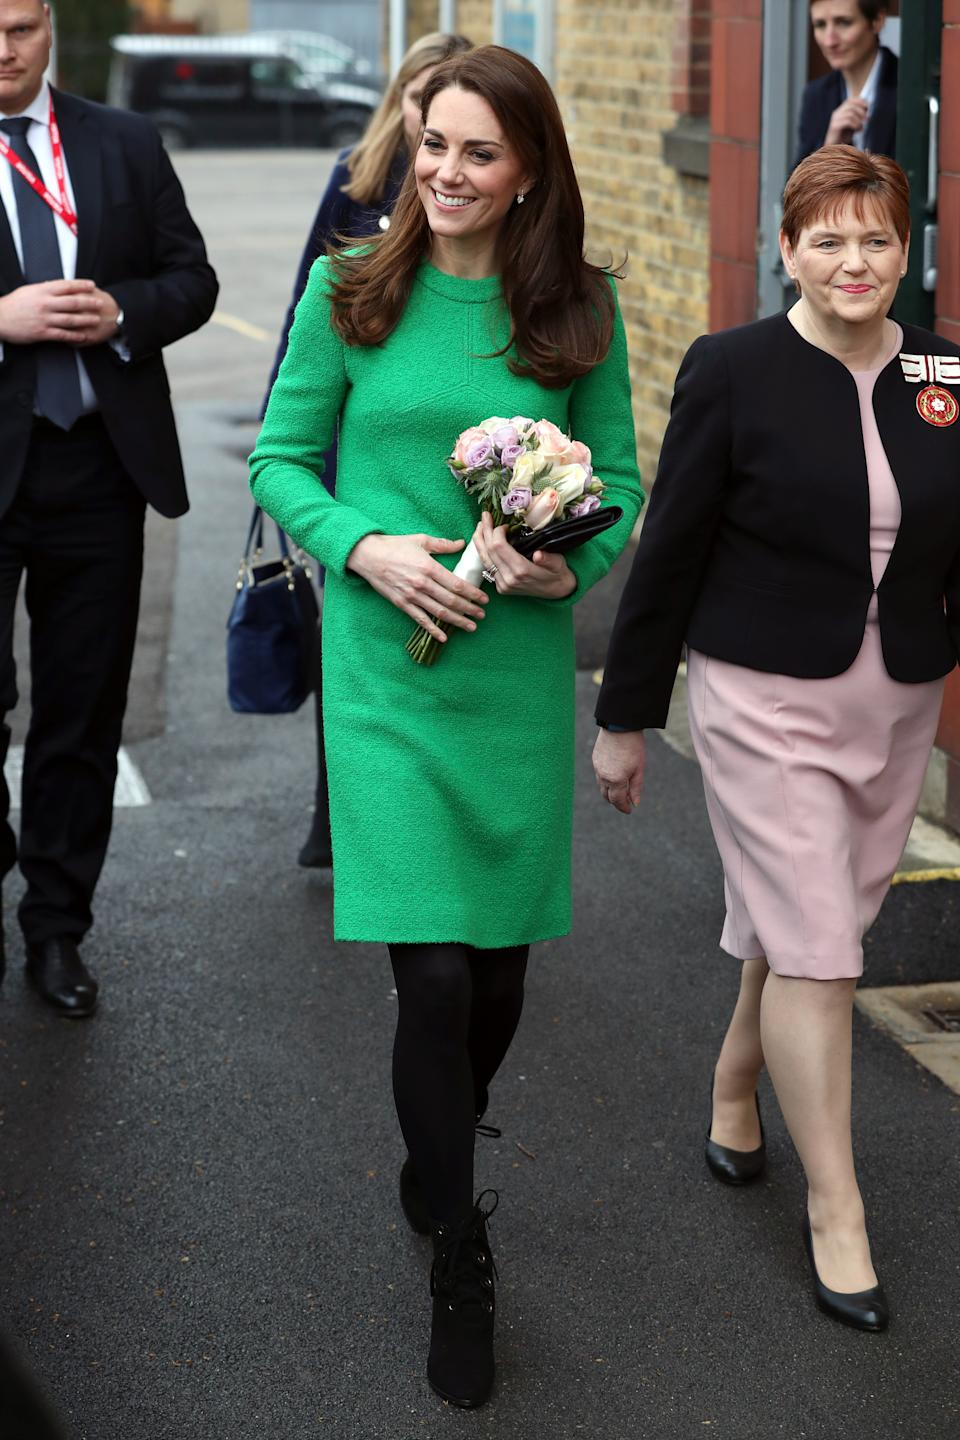 The Duchess of Cambridge visited Lavender Primary School in February wearing a bright green shift dress by Eponine London [Photo: Getty Images]